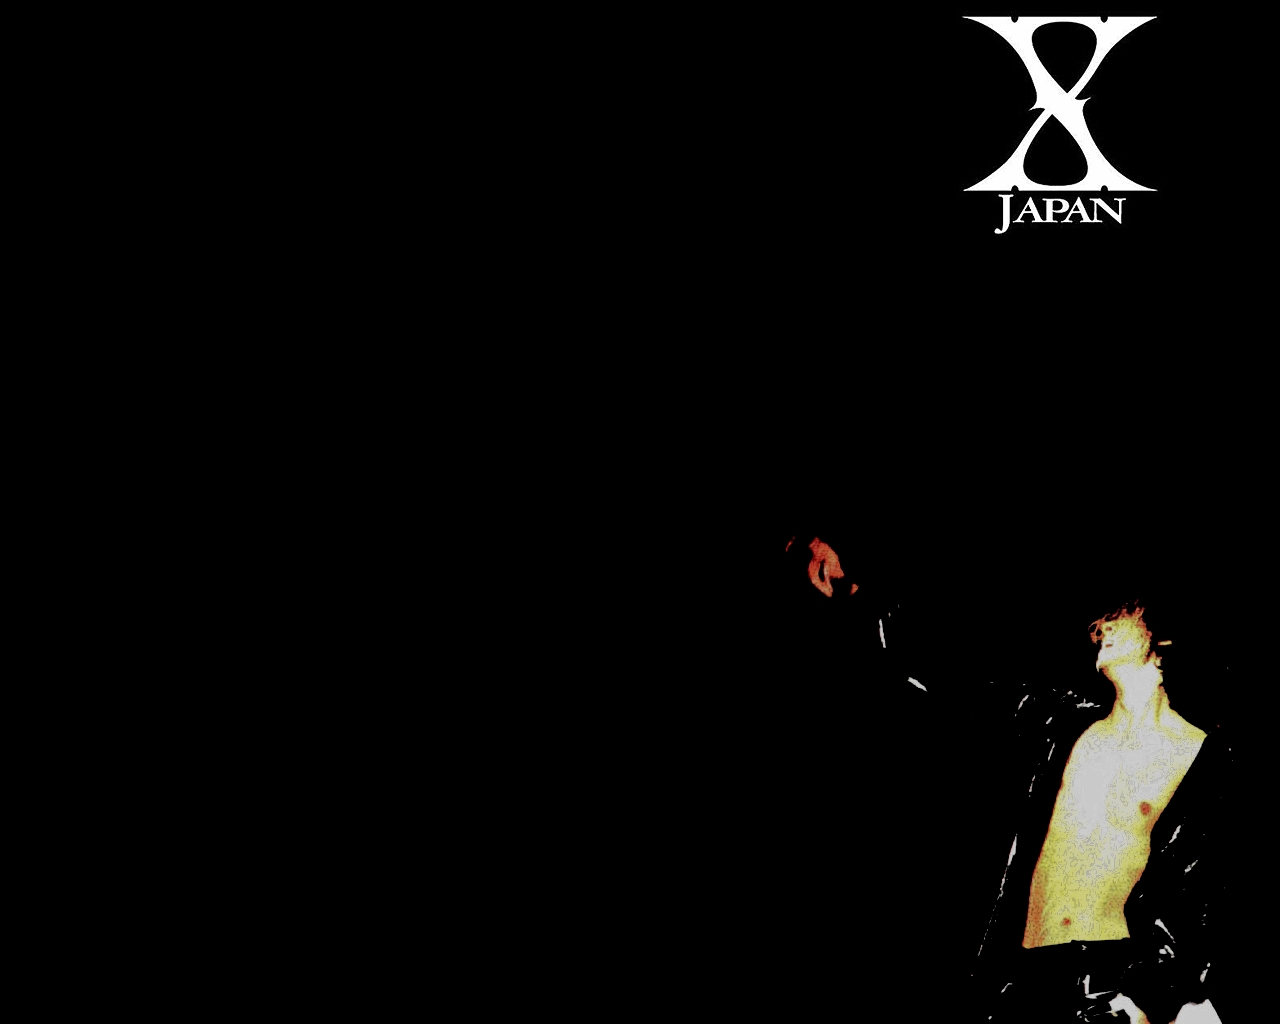 x japan wallpaper by dyingforwhat on deviantart